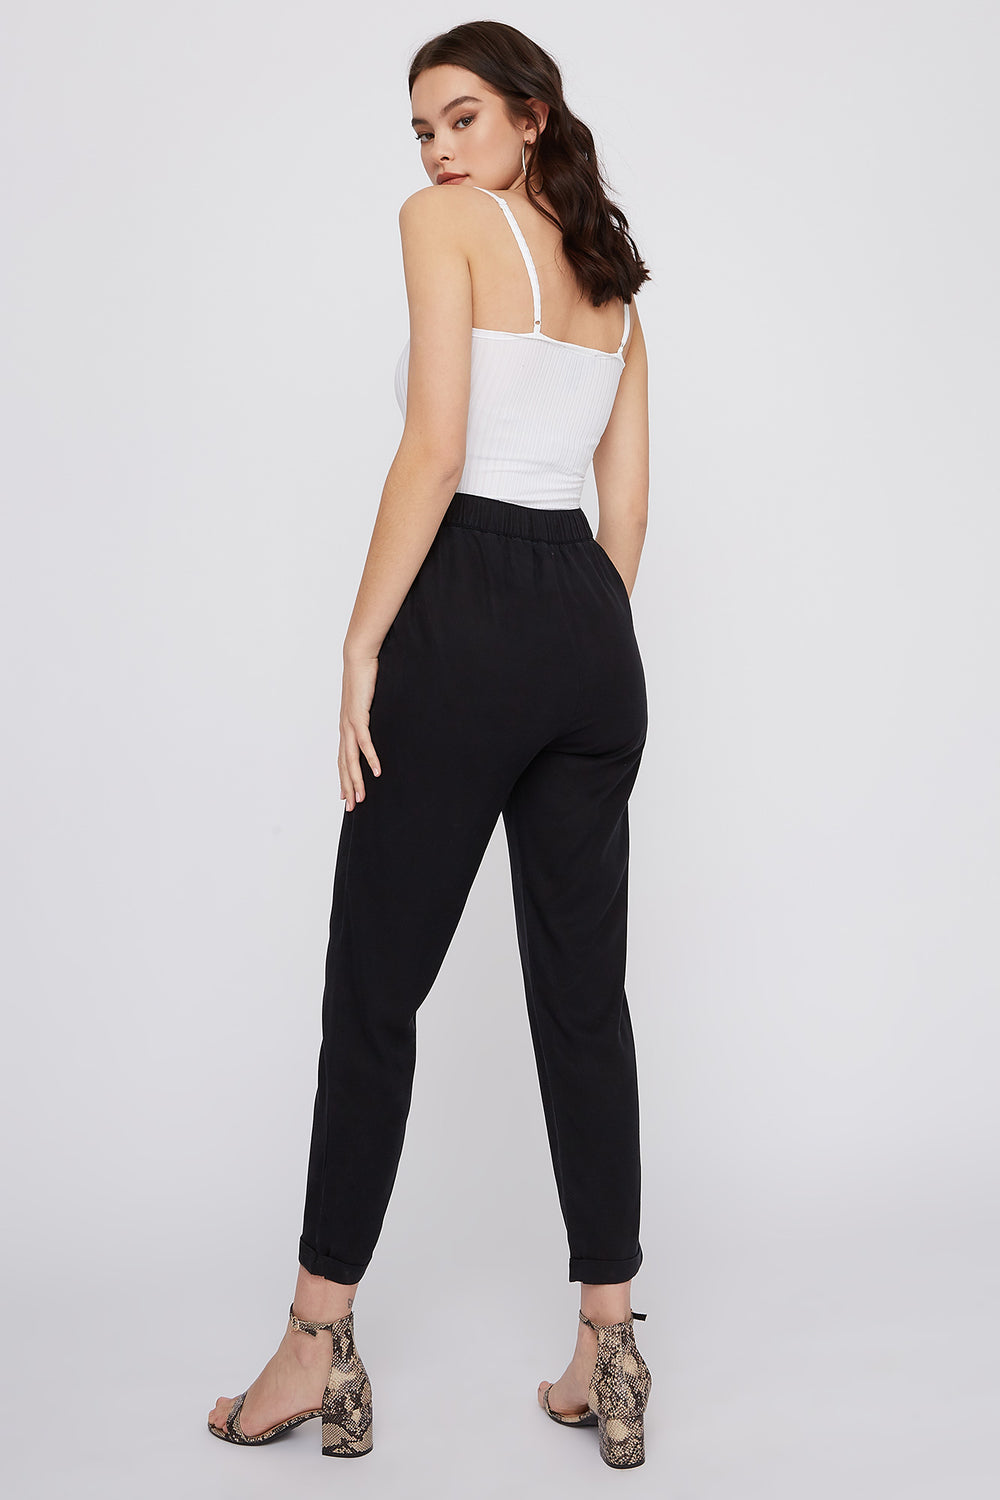 Self-Tie Roll-Up Pant Black